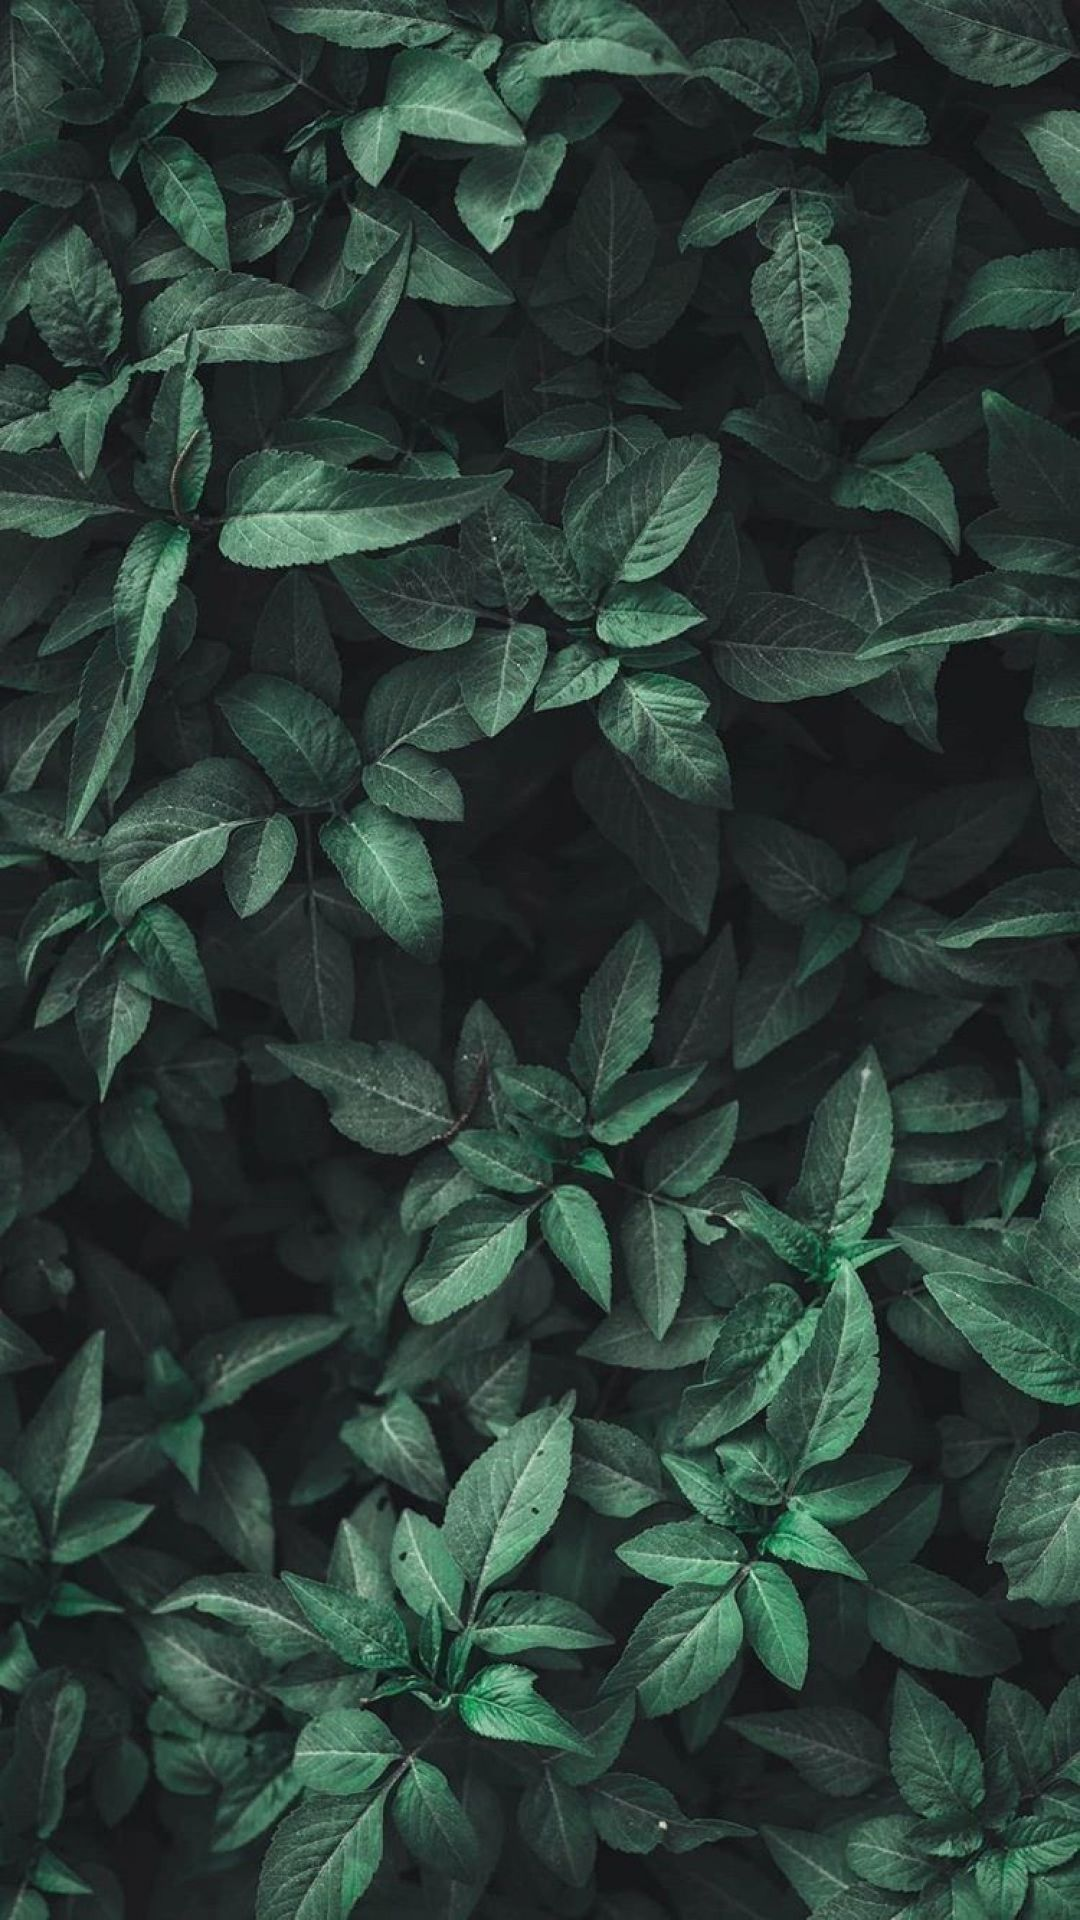 75 Green Aesthetic Tumblr Android Iphone Desktop Hd Backgrounds Wallpapers 1080p 4k 1080x1920 2020